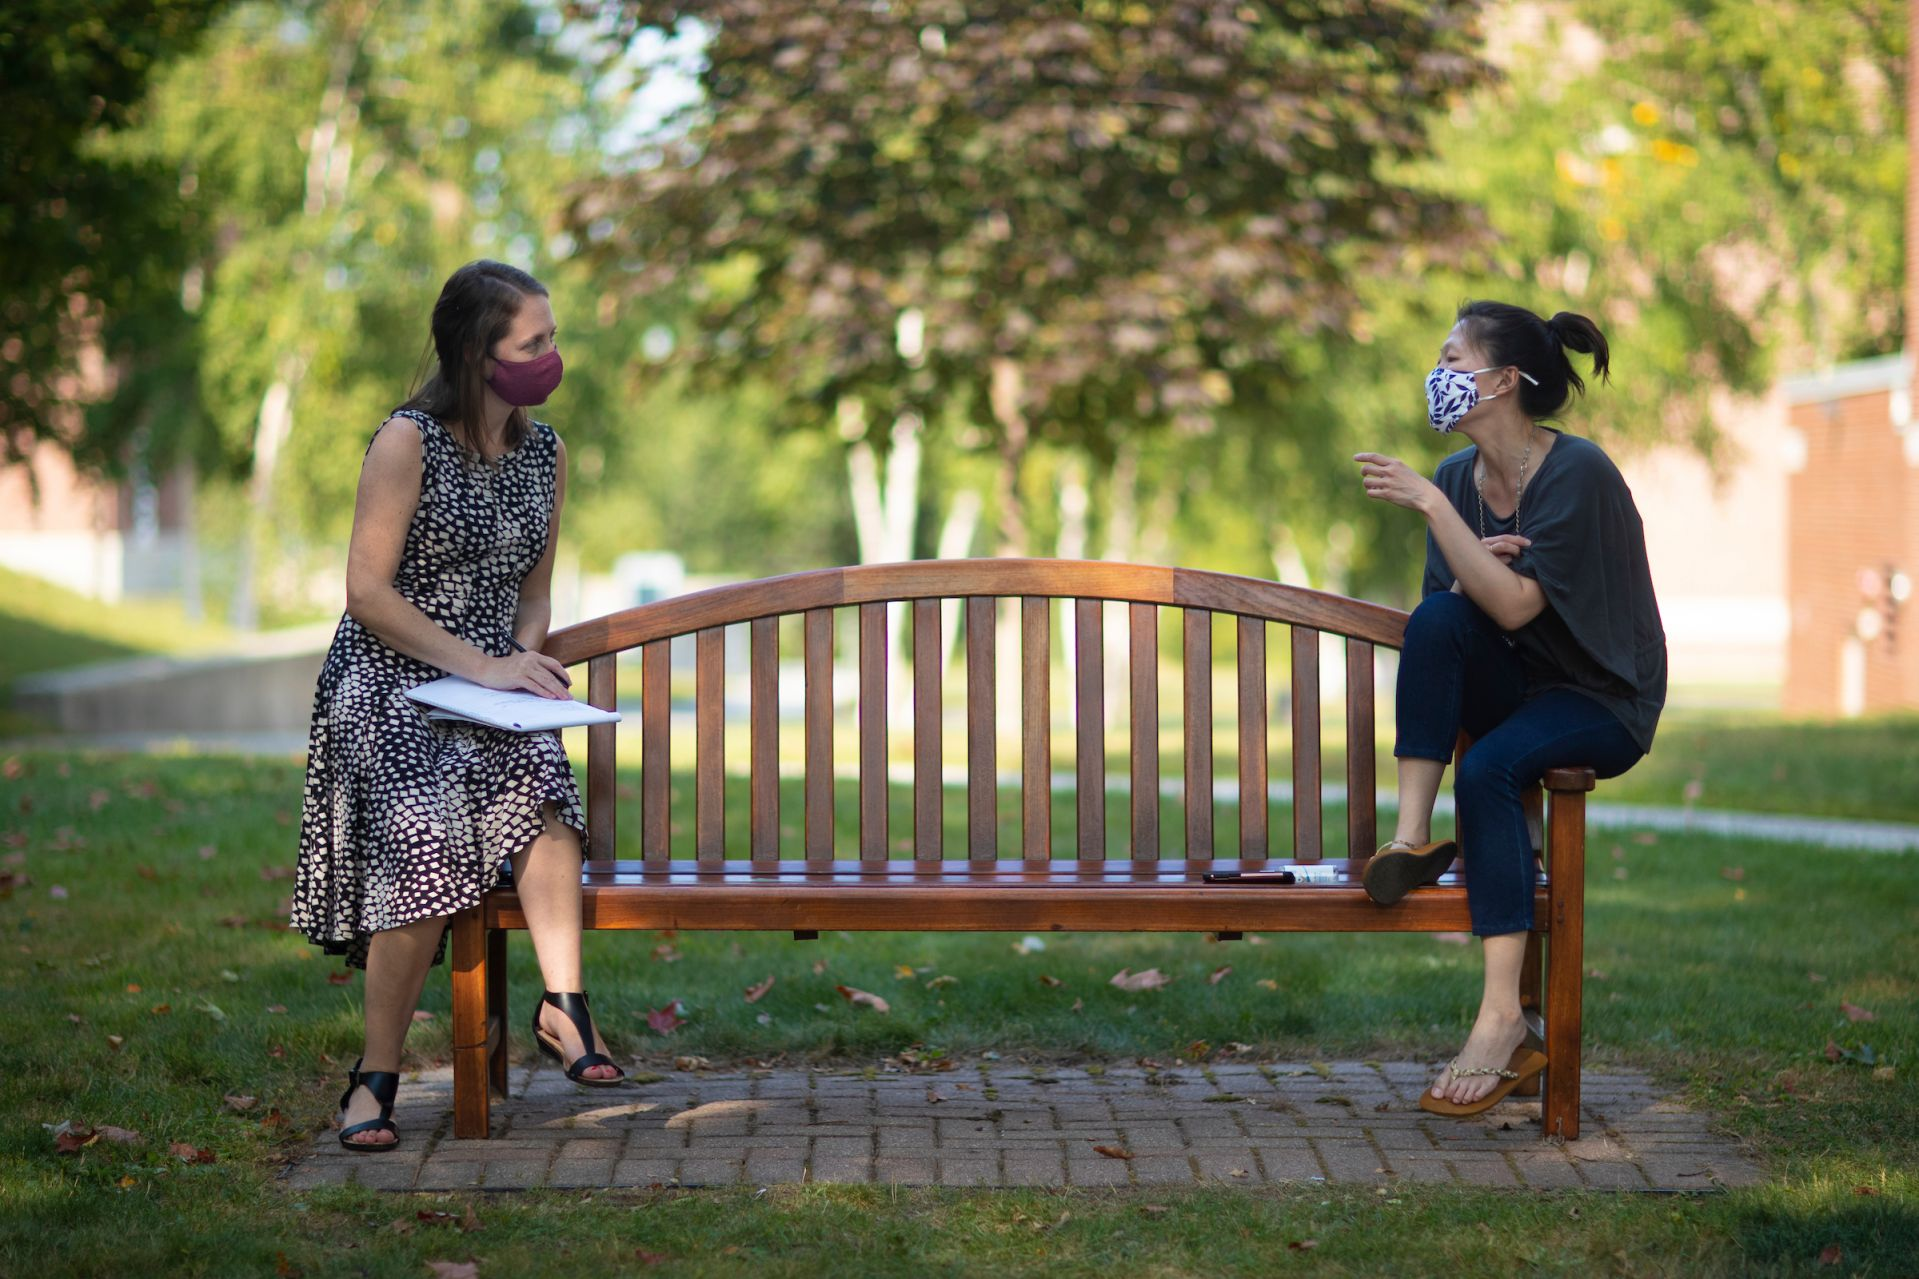 """Campus scenes on Sept. 8, 2020.  Beverly Vari and Hoi Ning Ngai, colleagues at the Bates Center for Purposeful Work, hold their weekly check-in meeting on the Historic Quad.  Besides talking strategy and tactics — from how to expand employment opportunities for students to following up on summer internships — they also """"catch up on how we're engaging in self-care — especially given the challenges of operating in a pandemic,"""" says Ngai. Prioritizing health and well-being is not just personal: """"It's a way to model that mindset for students as they become professionals."""""""